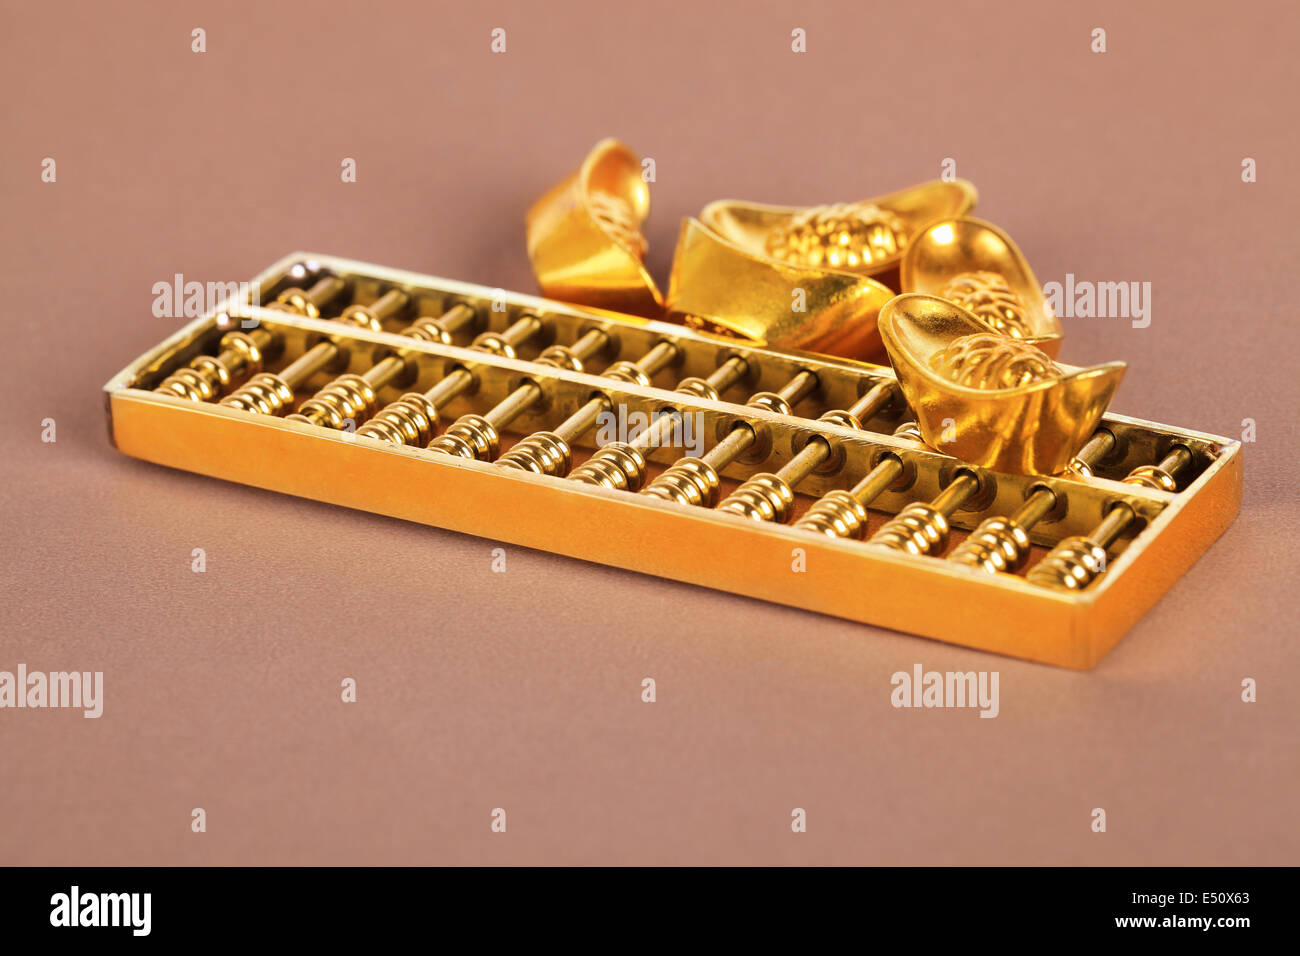 chinese gold ingot and golden abacus - Stock Image